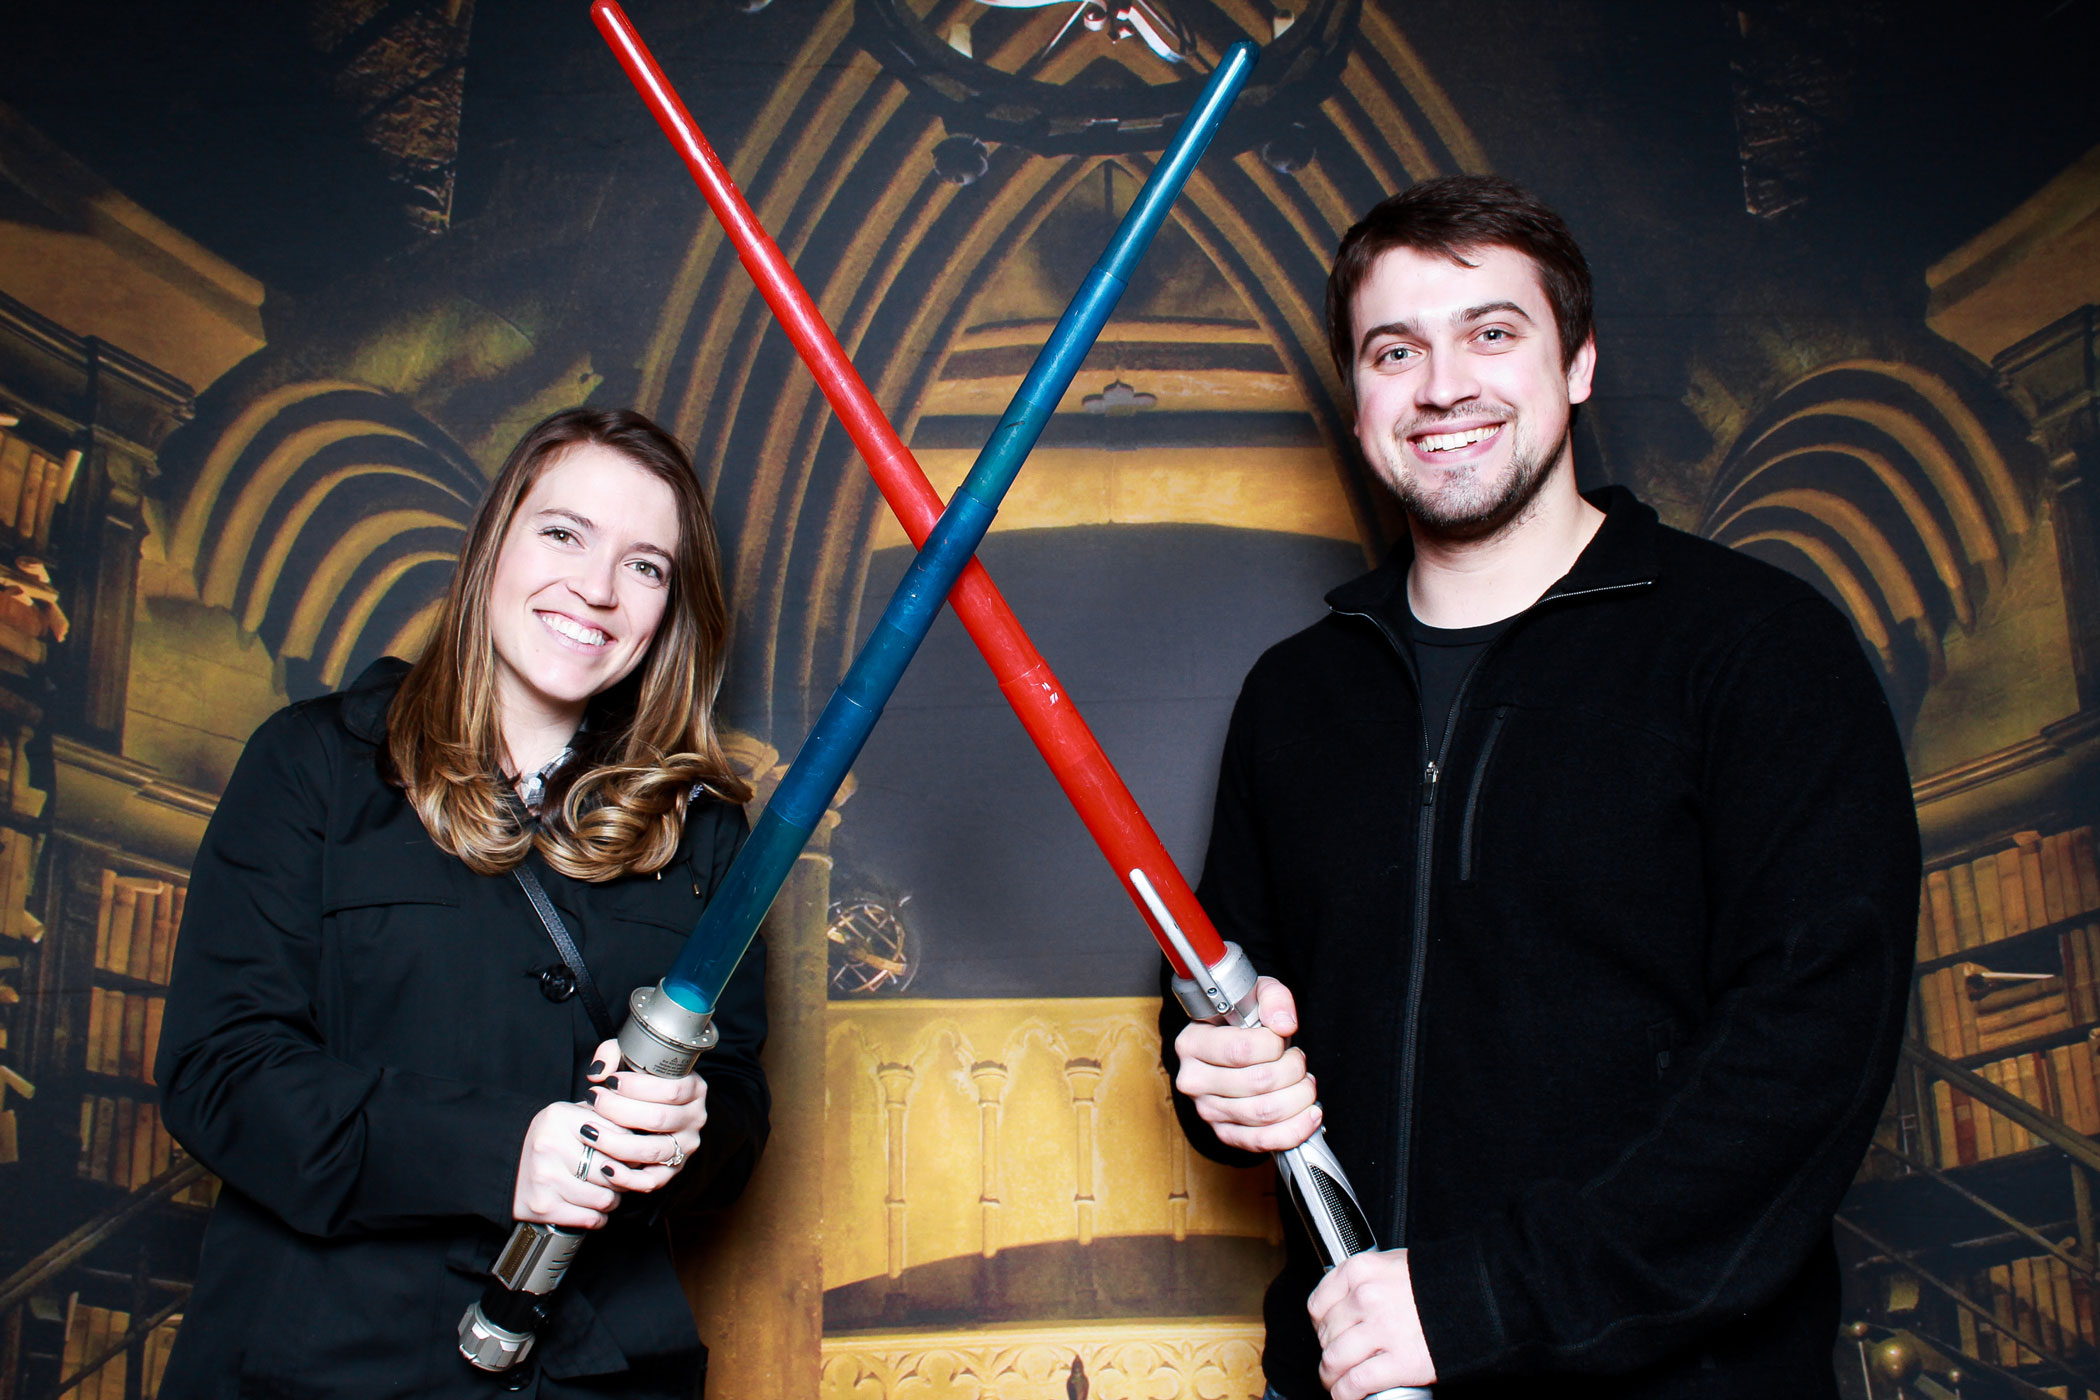 Star wars lightsabers photo booth props